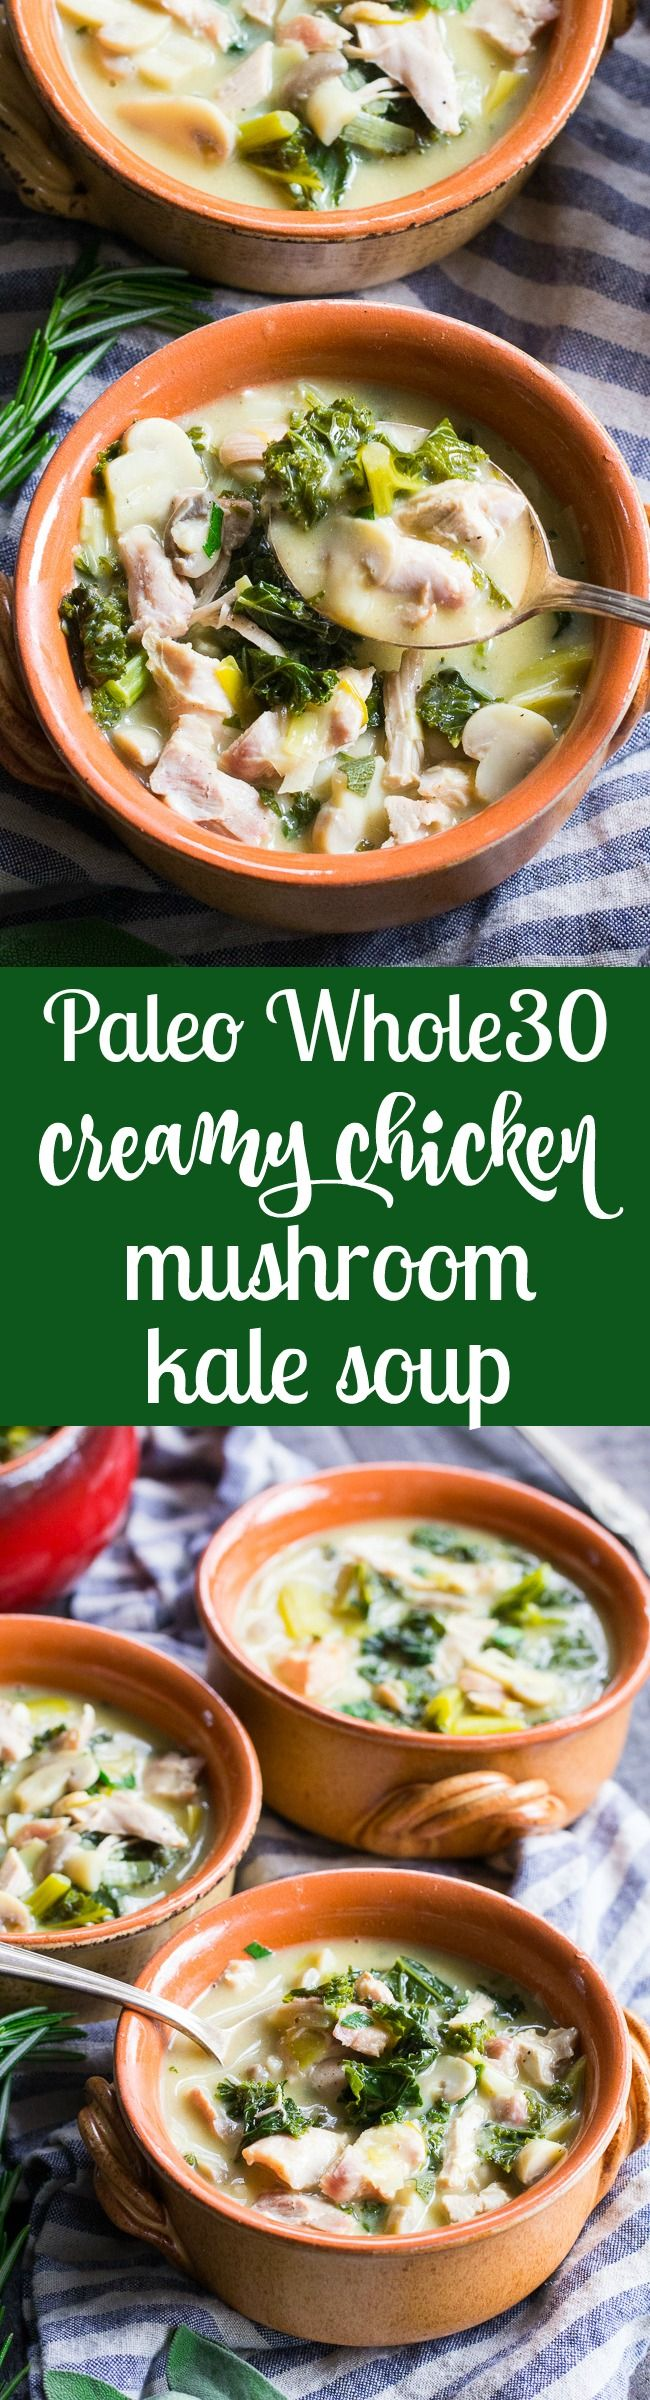 This Creamy Paleo Chicken Soup is cozy, comforting, and loaded with veggies and flavor! Mushrooms, garlic, leeks, kale and chicken in a creamy dairy free, paleo, and Whole30 soup that's filling and healthy. Quick and easy to make for weeknight dinners, too!